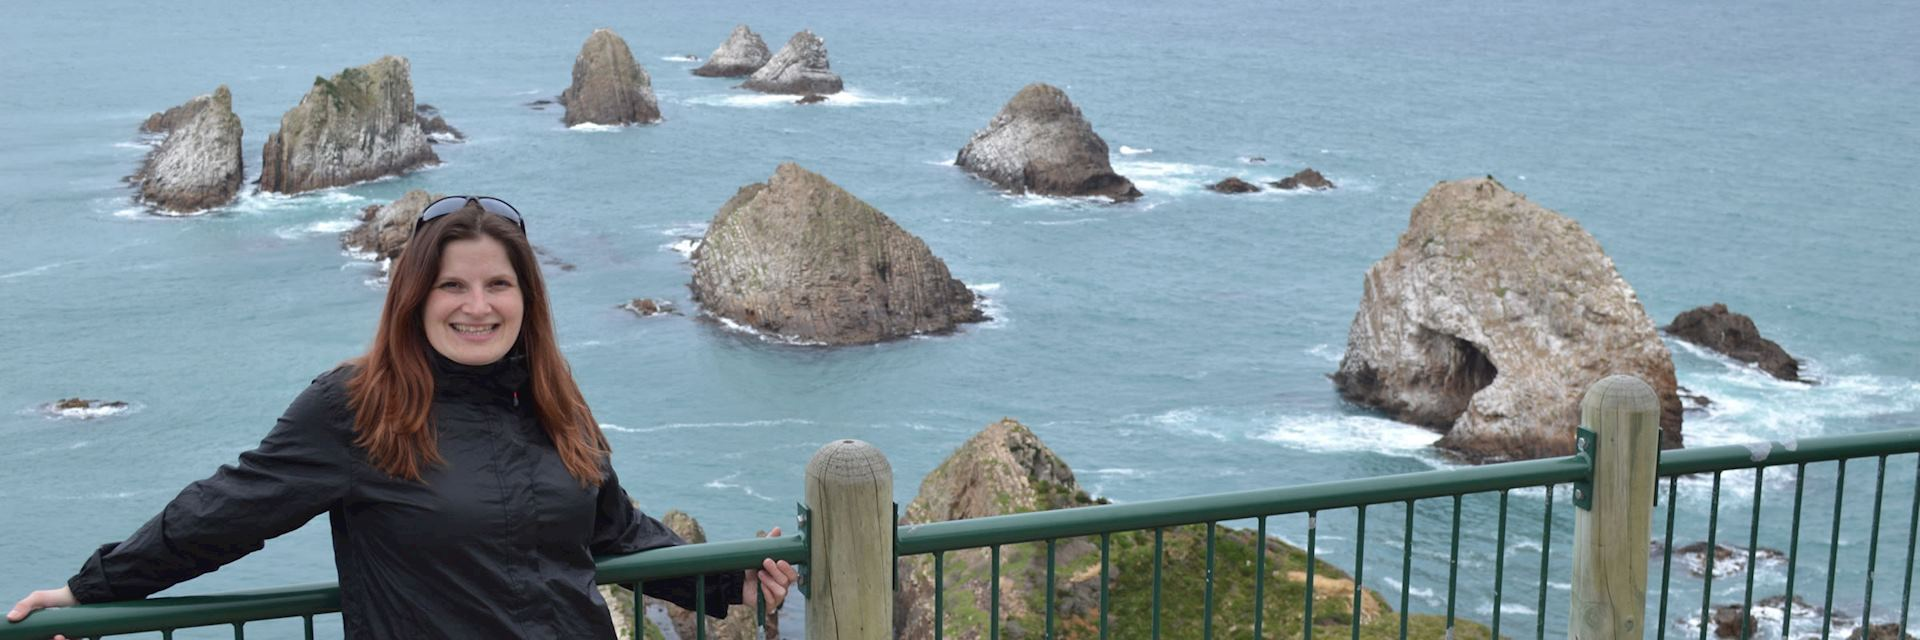 Barbara at Nugget Point on the Catlin Coast